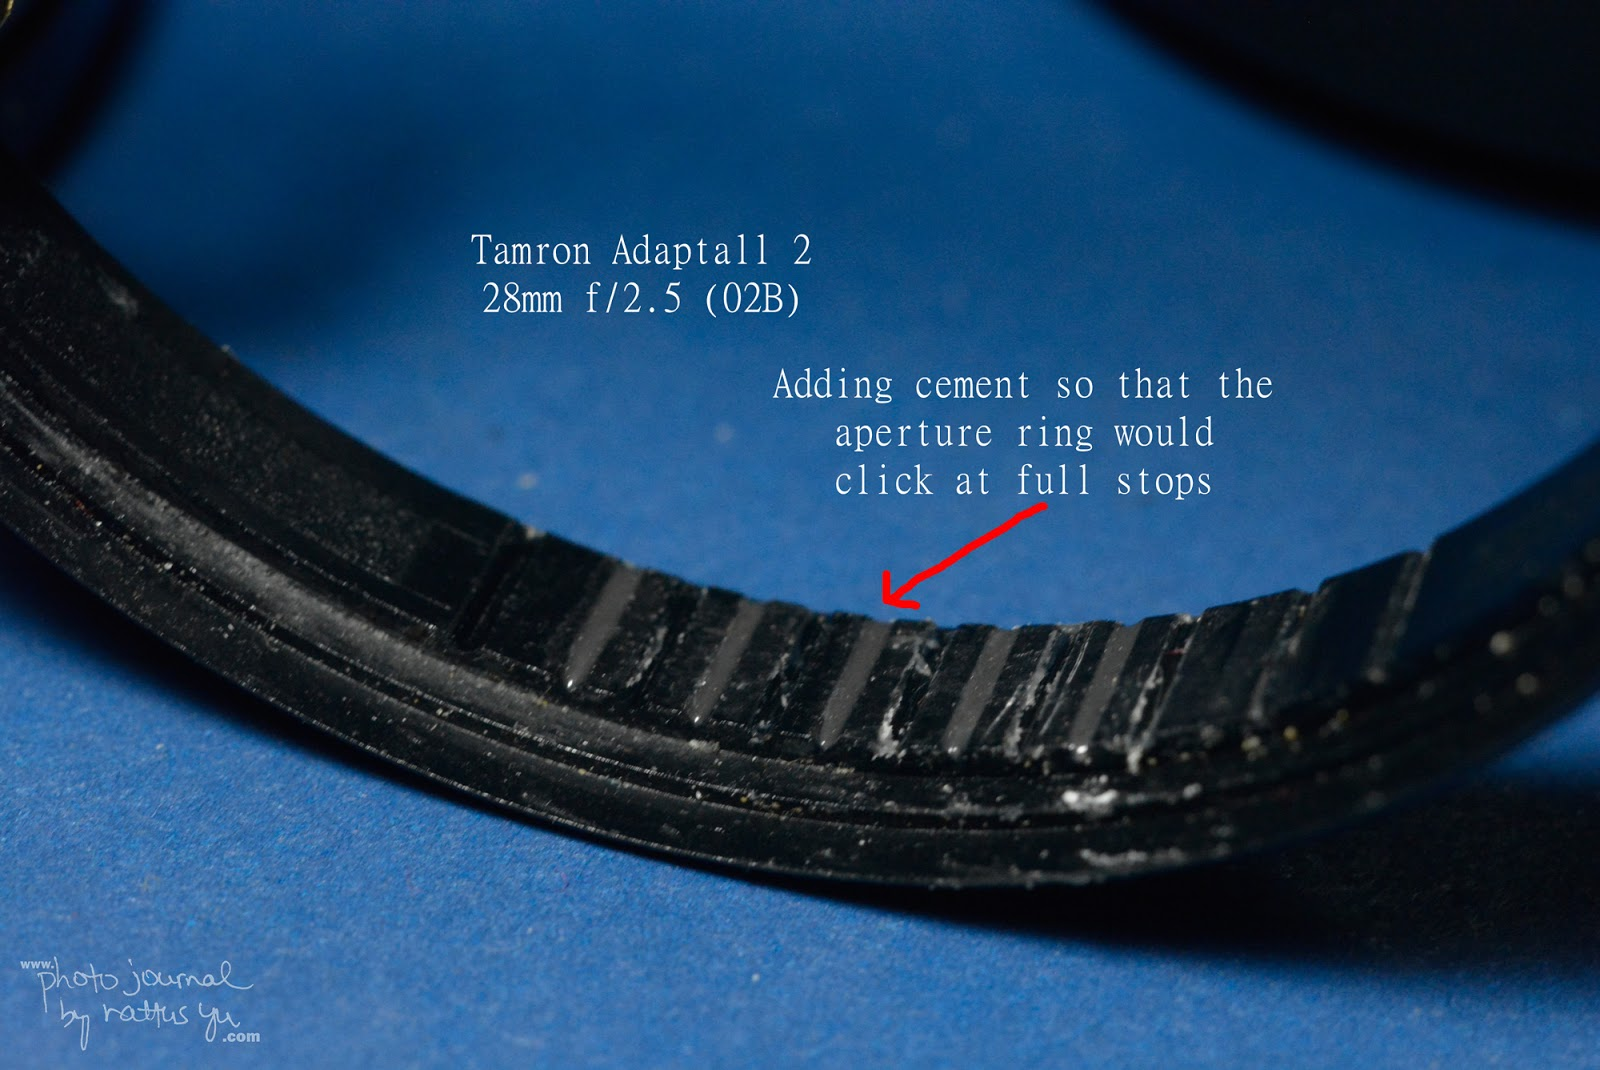 Tamron Adaptall 2 28mm f/2.5 (02B), Wide Angle Lens